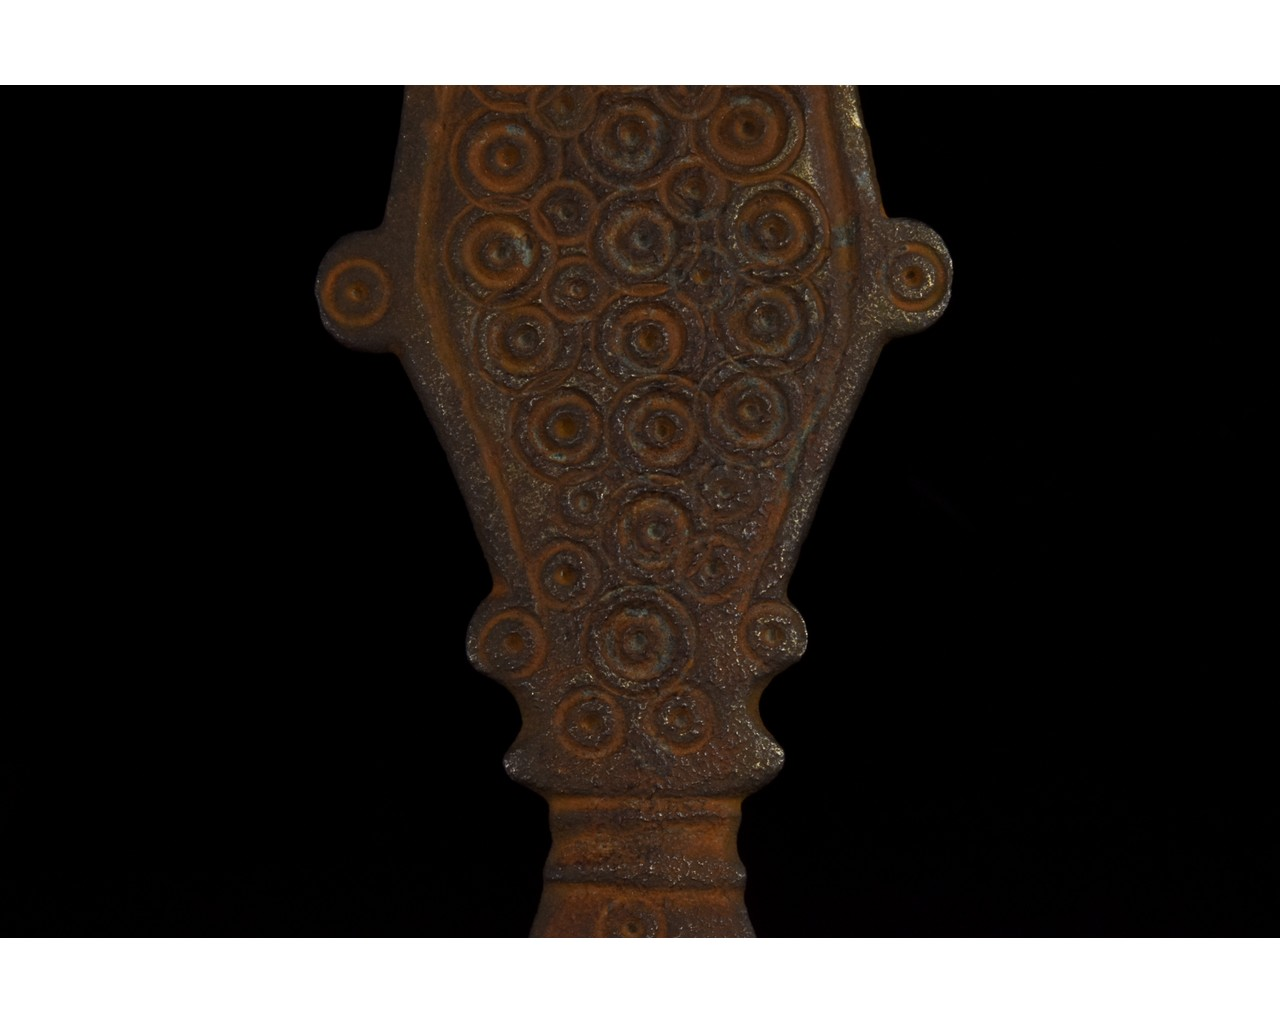 PAIR OF VISIGOTHIC RADIATE HEADED BOW BROOCHES - Image 7 of 8